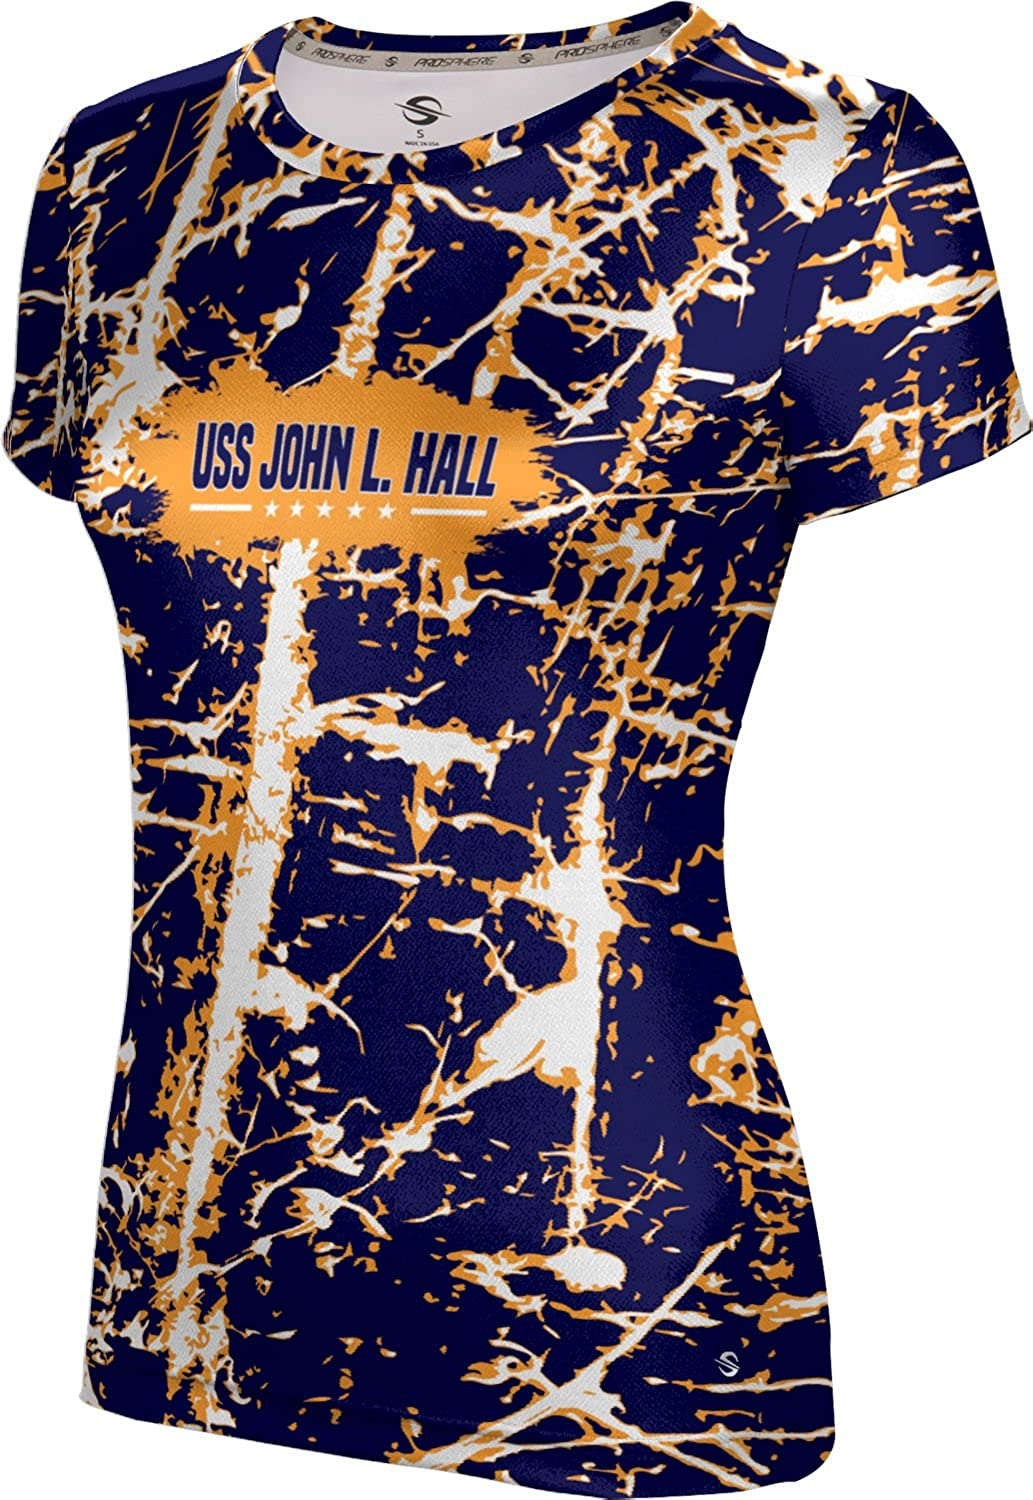 ProSphere Women's USS John L. Hall Military Distressed Tech Tee